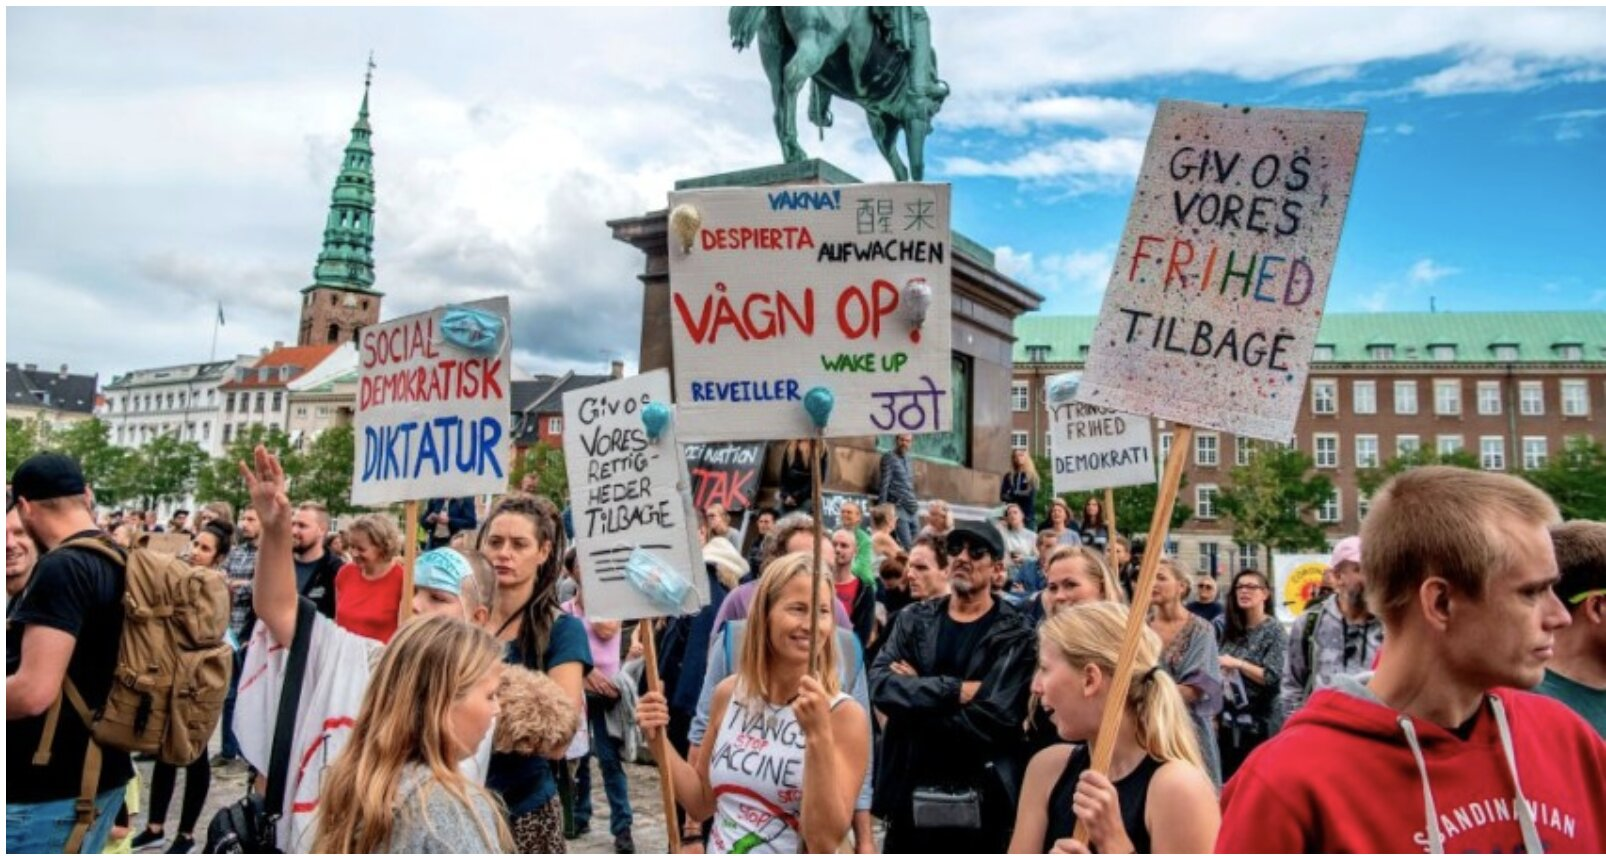 Forced Vaccination Law in Denmark Abandoned After Public Protests